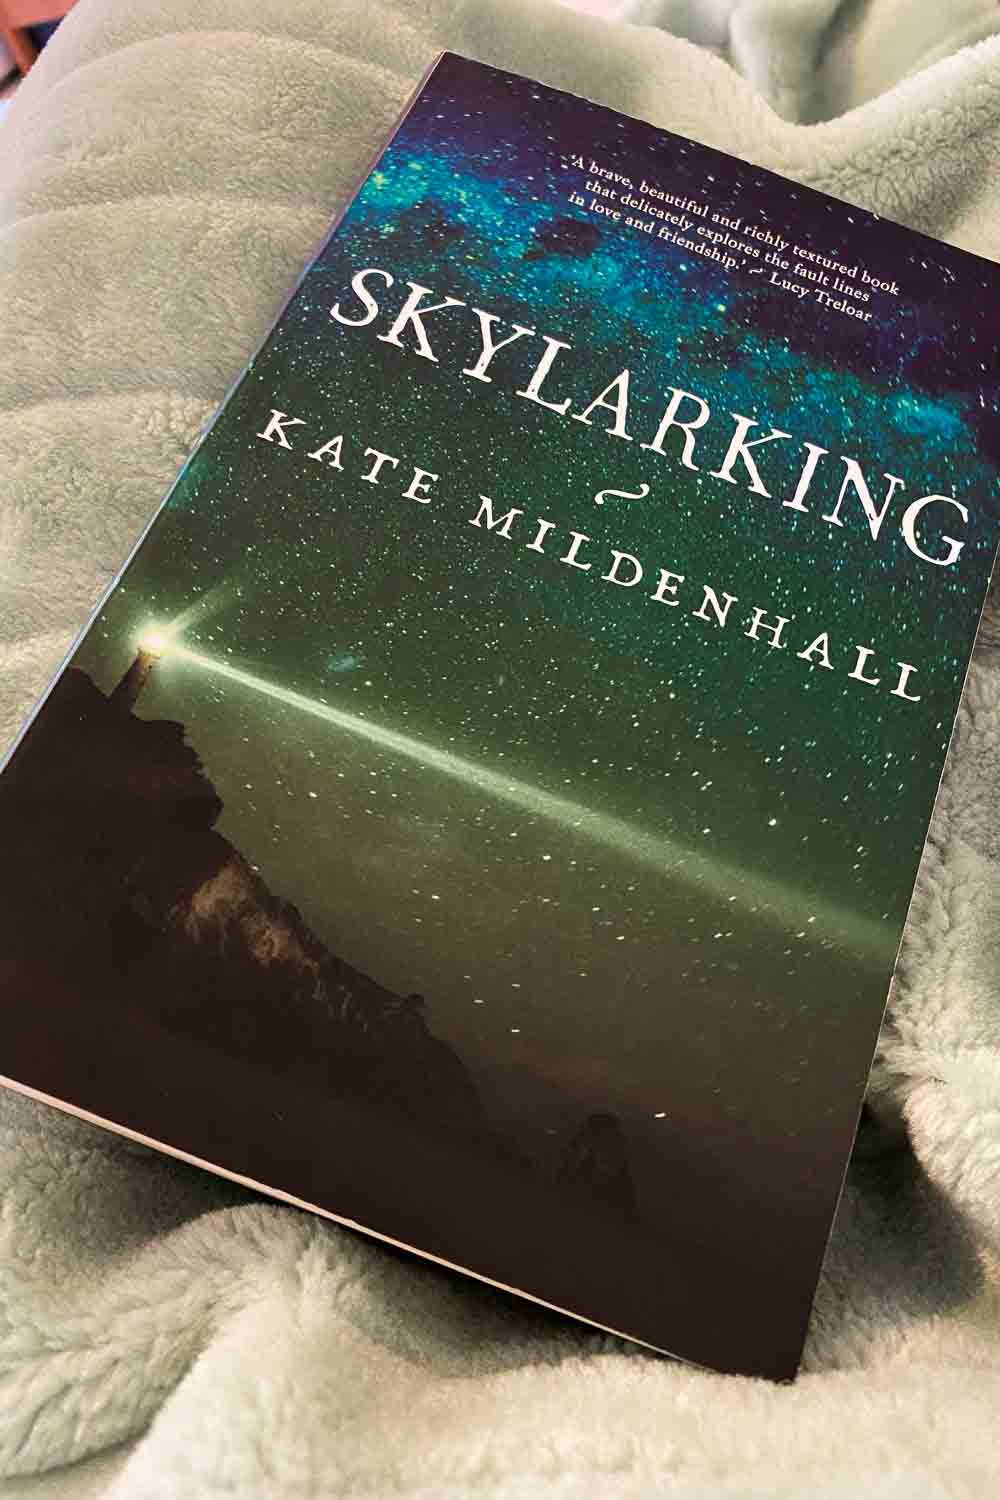 Two best friends in Skylarking by Kate Mildenhall